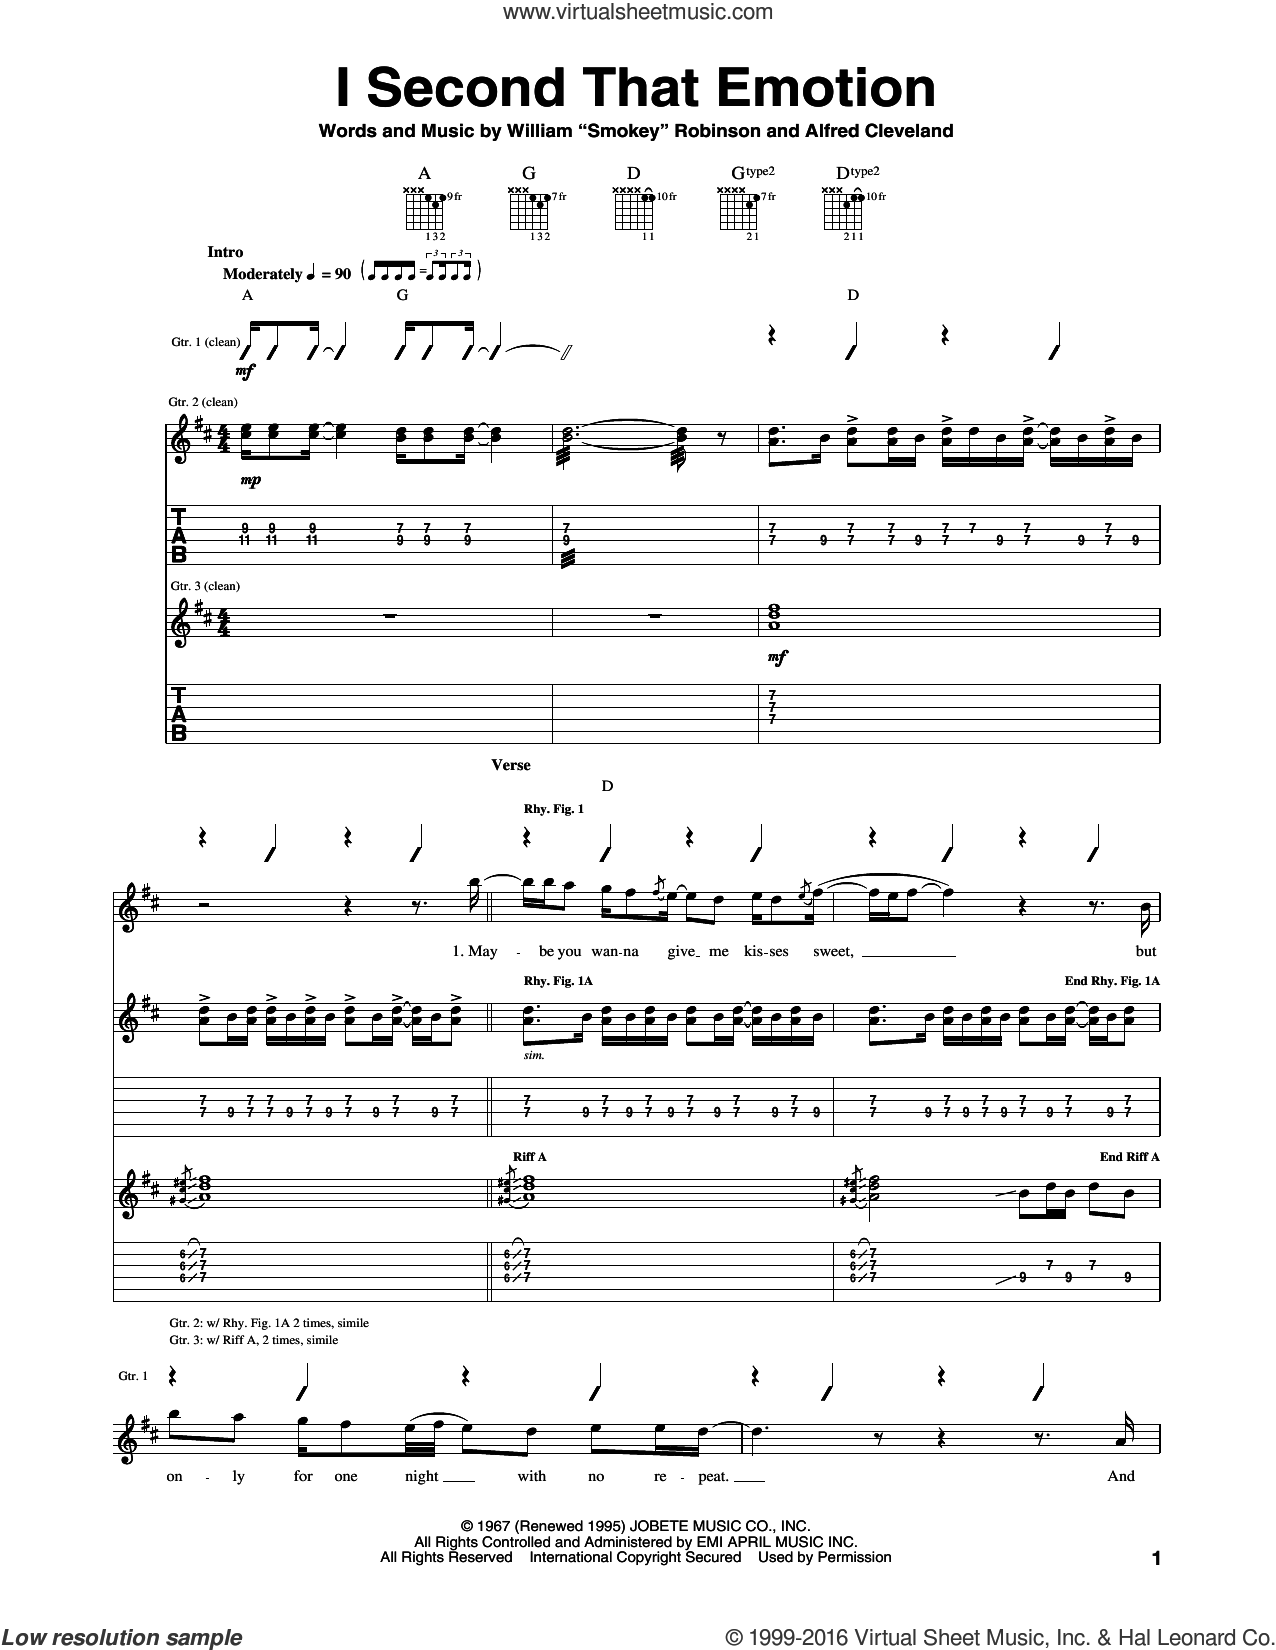 I Second That Emotion sheet music for guitar (tablature) by Smokey Robinson & The Miracles and Alfred Cleveland, intermediate